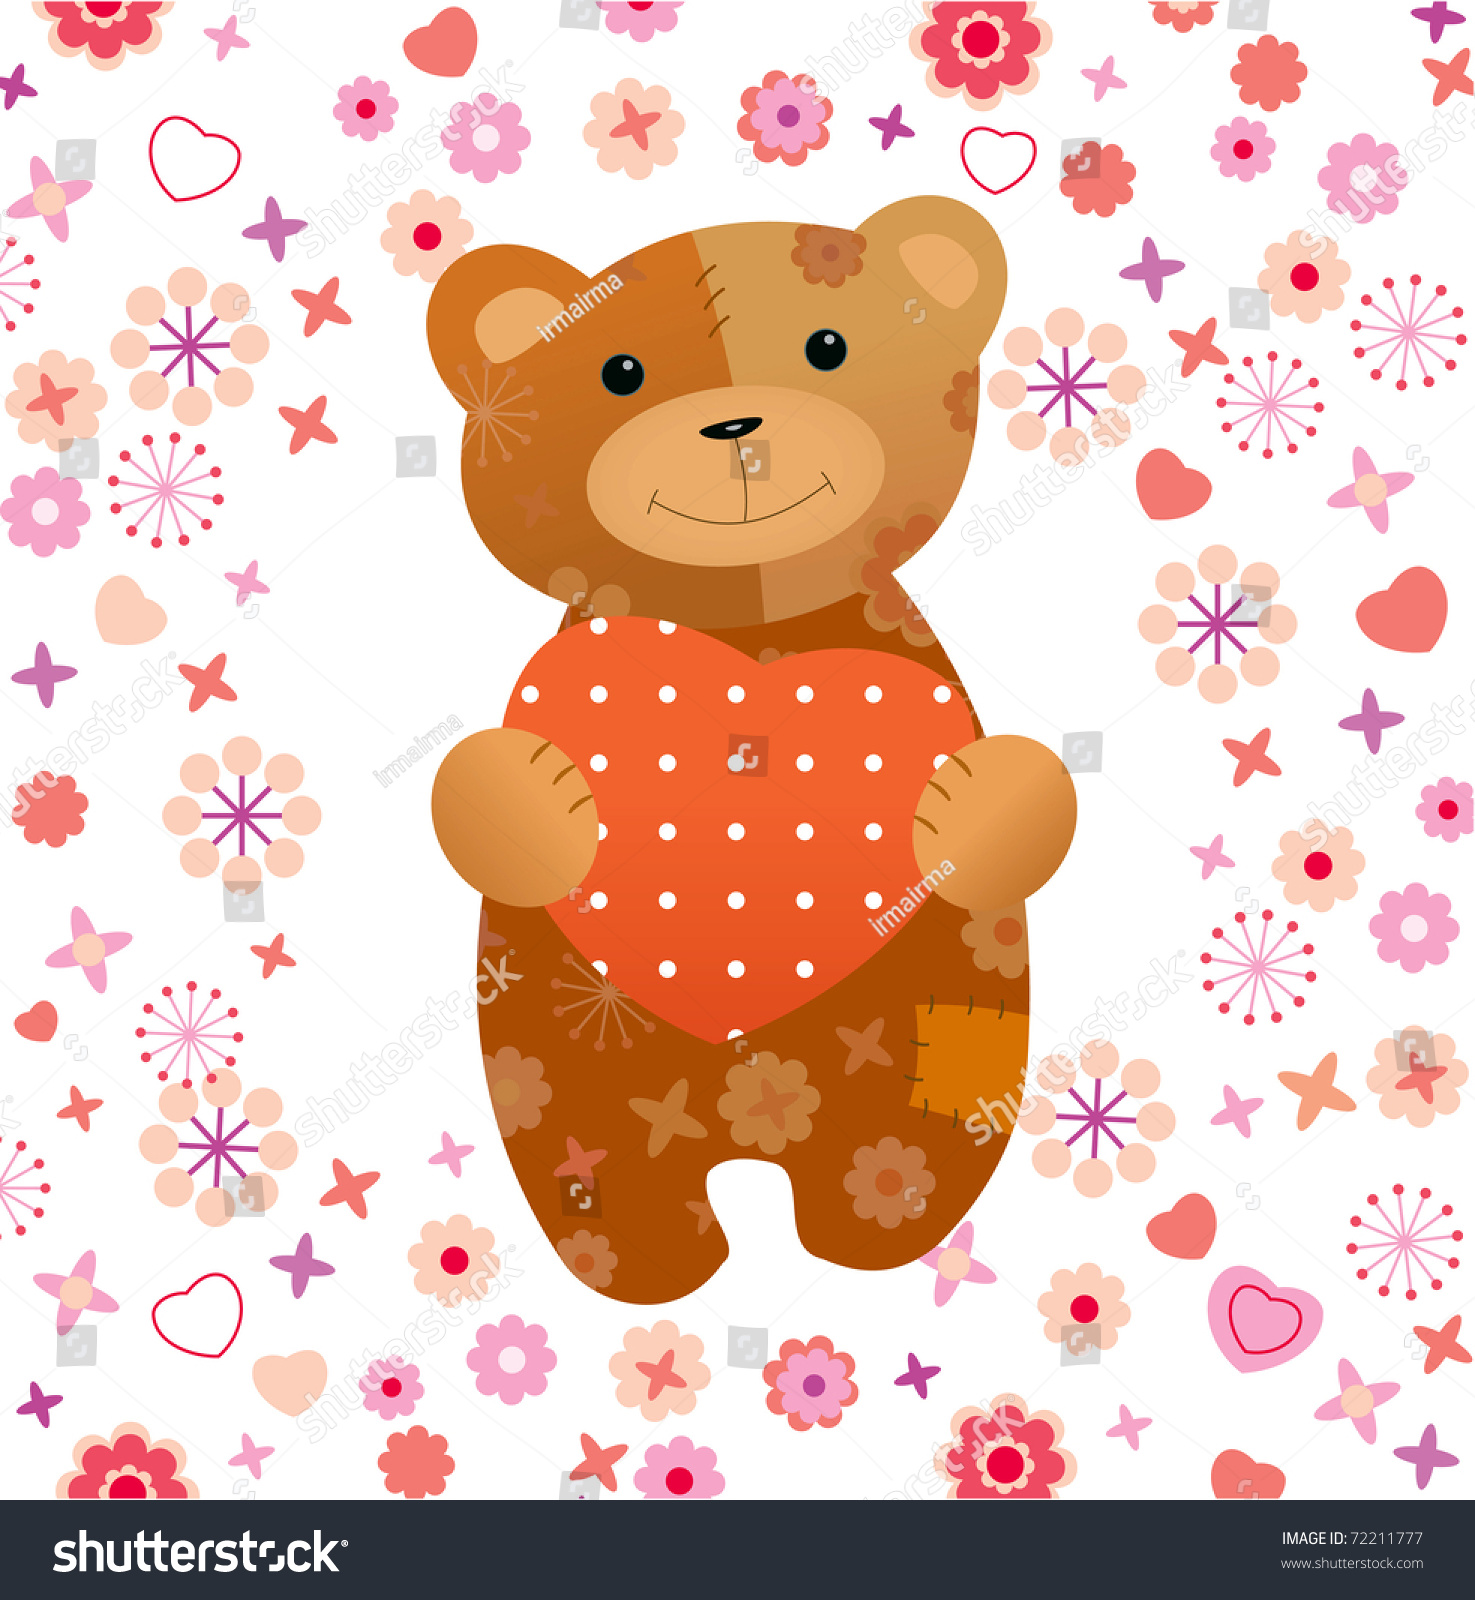 Teddy bear with heart and flowers